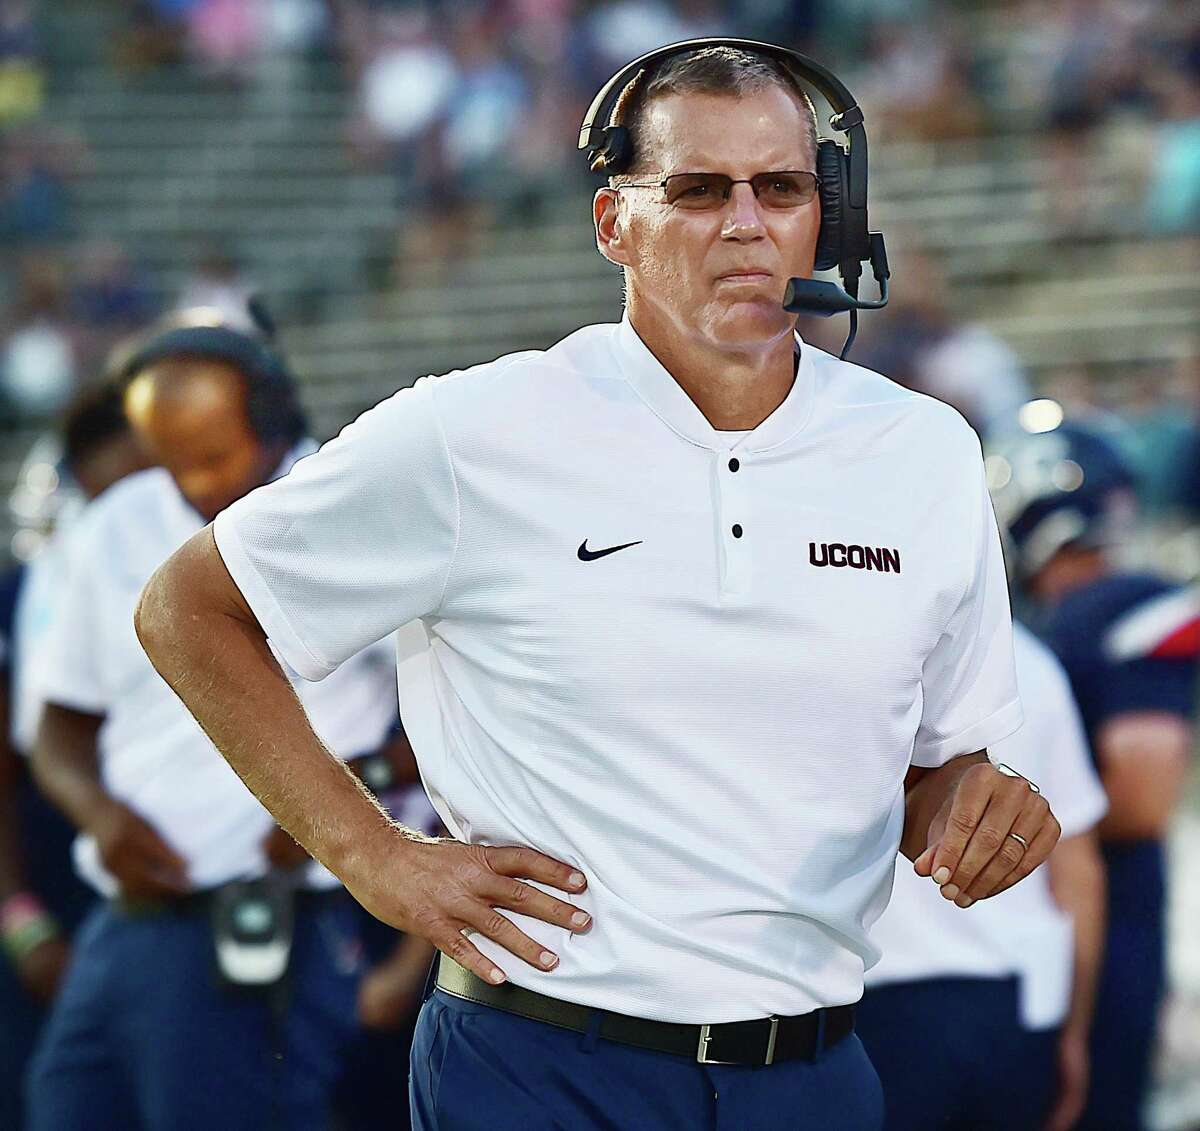 UConn coach Randy Edsall on the sidelines in the Huskies' season opener against the University of Central Florida Knights in an American Athletic Conference matchup on Aug. 30, 2018 at Pratt & Whitney Stadium at Rentschler Field in East Hartford.